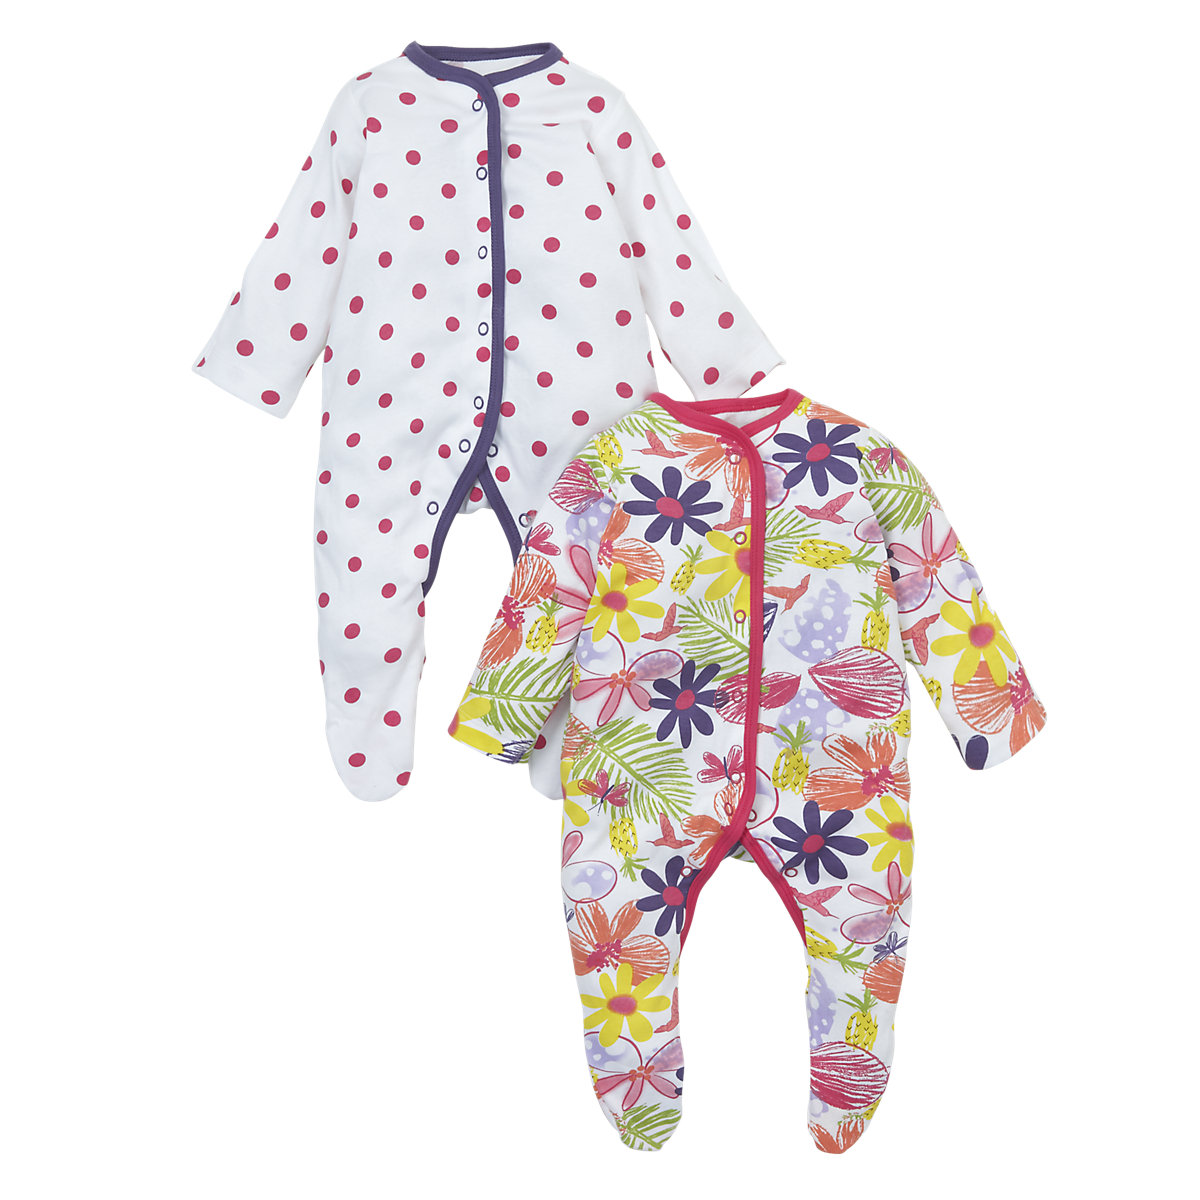 Mothercare Newborns Sleepsuits - 2 Pack Size 6-9 months